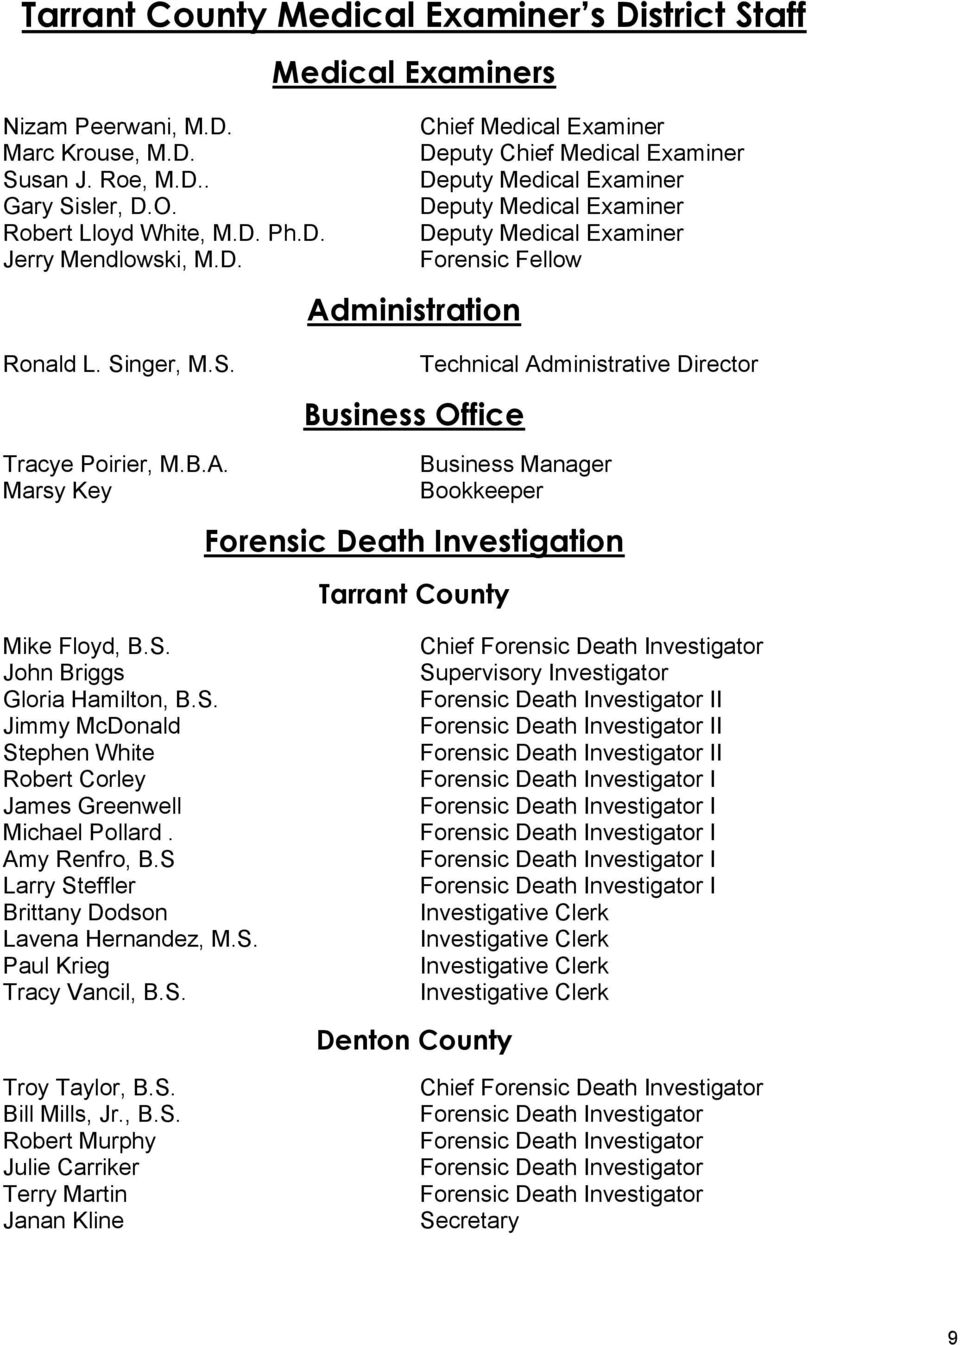 nger, M.S. Technical Administrative Director Business Office Tracye Poirier, M.B.A. Business Manager Marsy Key Bookkeeper Forensic Death Investigation Tarrant County Mike Floyd, B.S. John Briggs Gloria Hamilton, B.